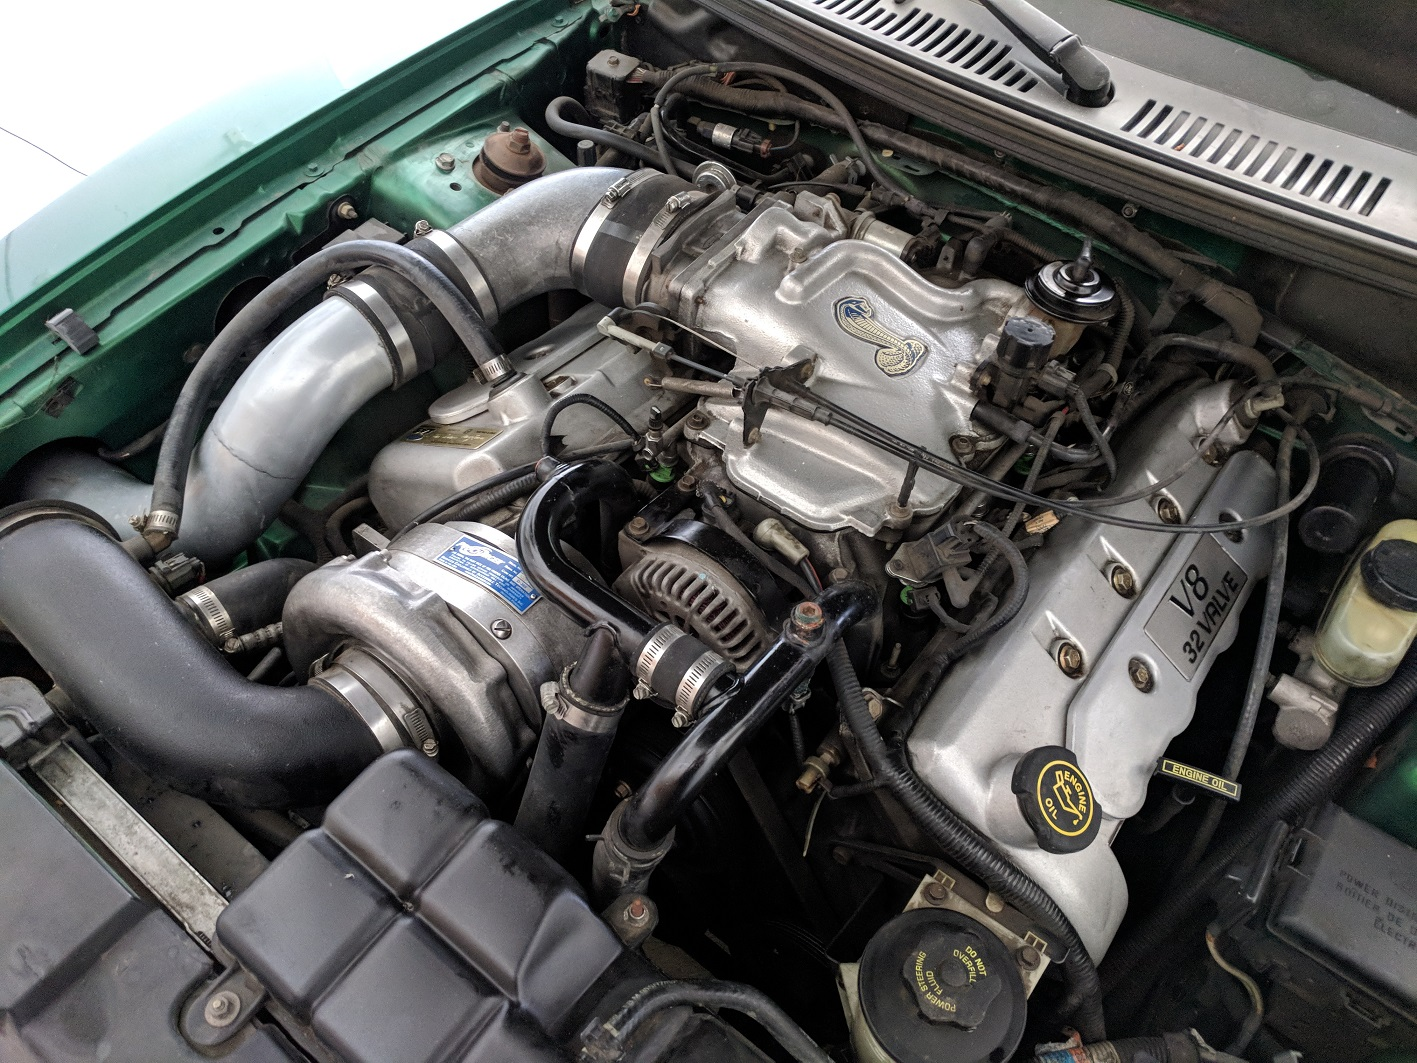 hight resolution of  engine issue on 1999 cobra repair or sell as is img 20180531 141548 jpg